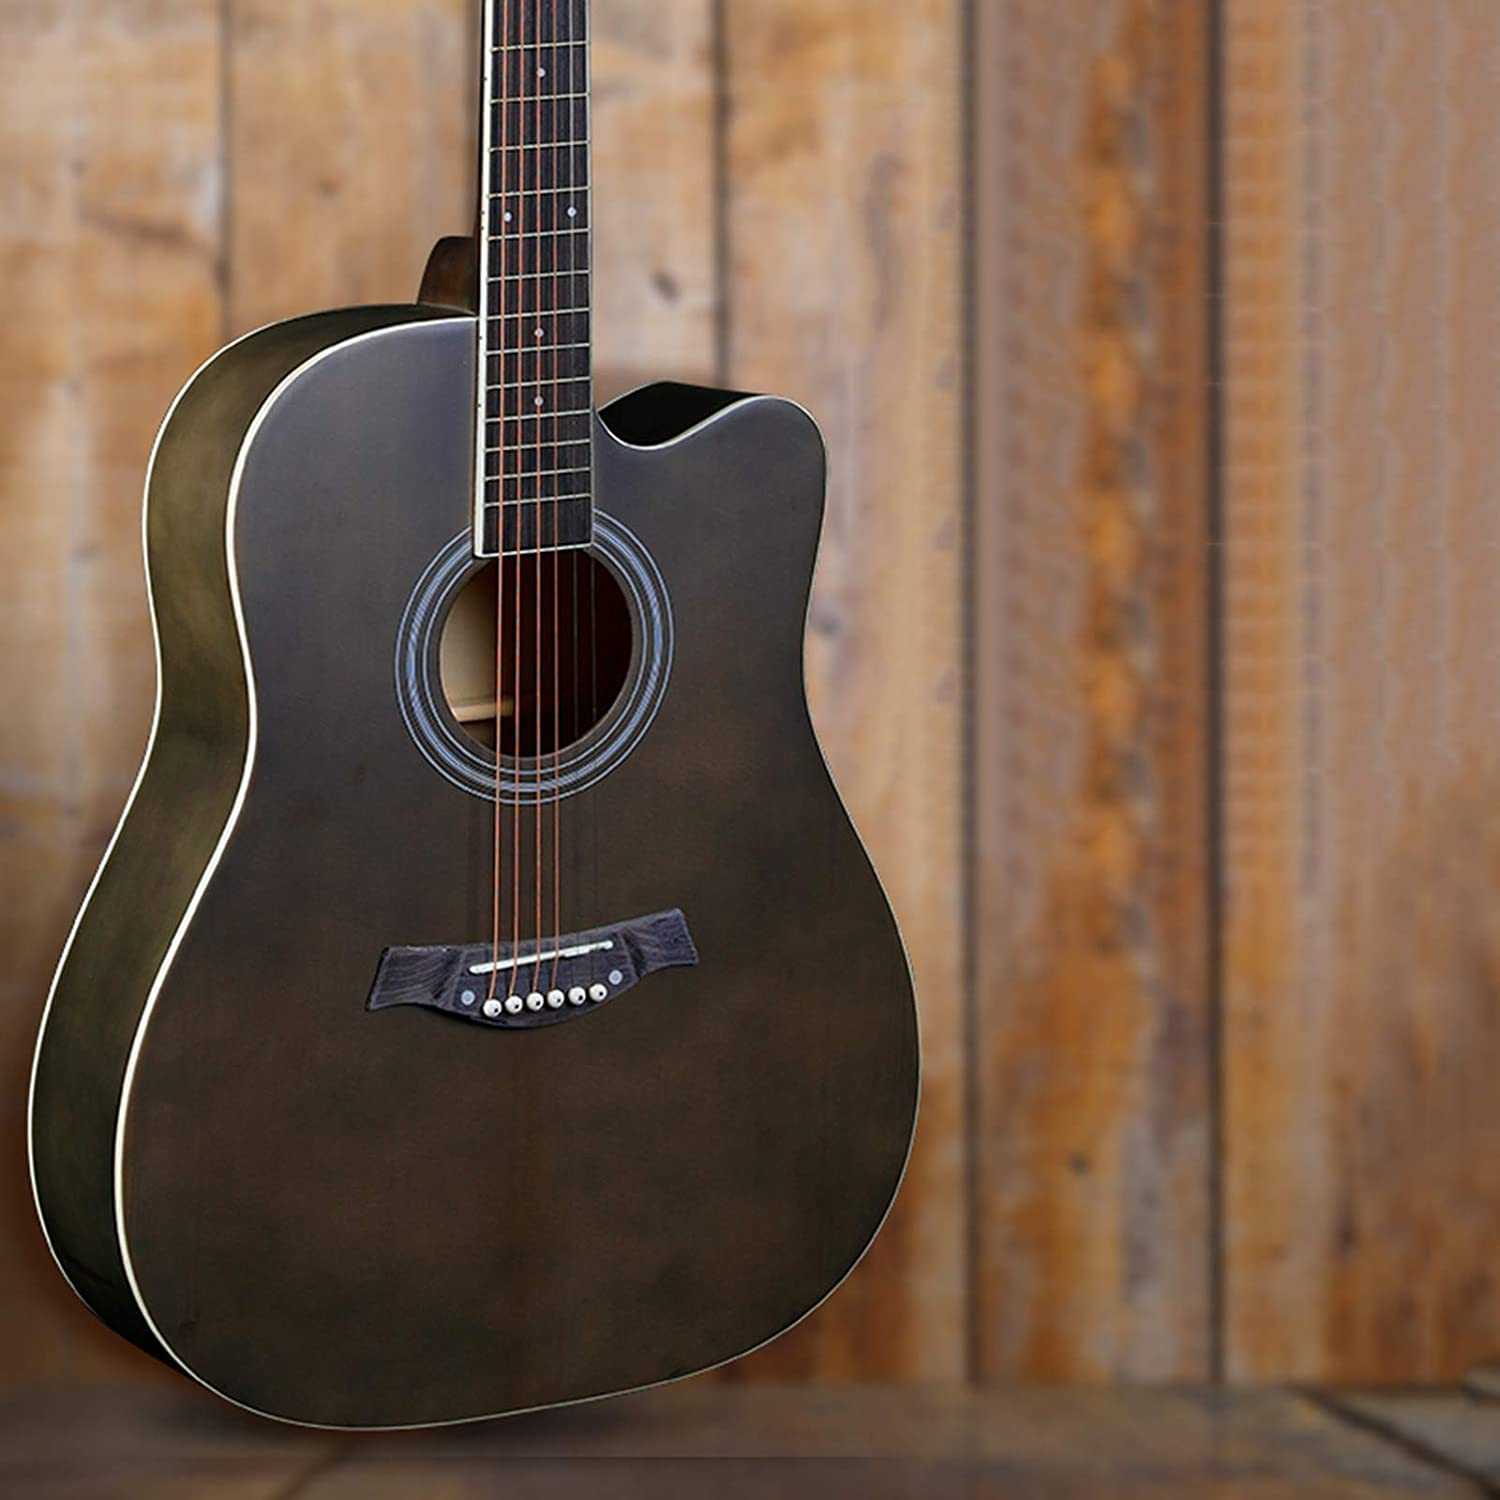 YYFANG Guitar Folk Song Spruce Max 88% Cheap OFF Stri Acoustic Veneer Low